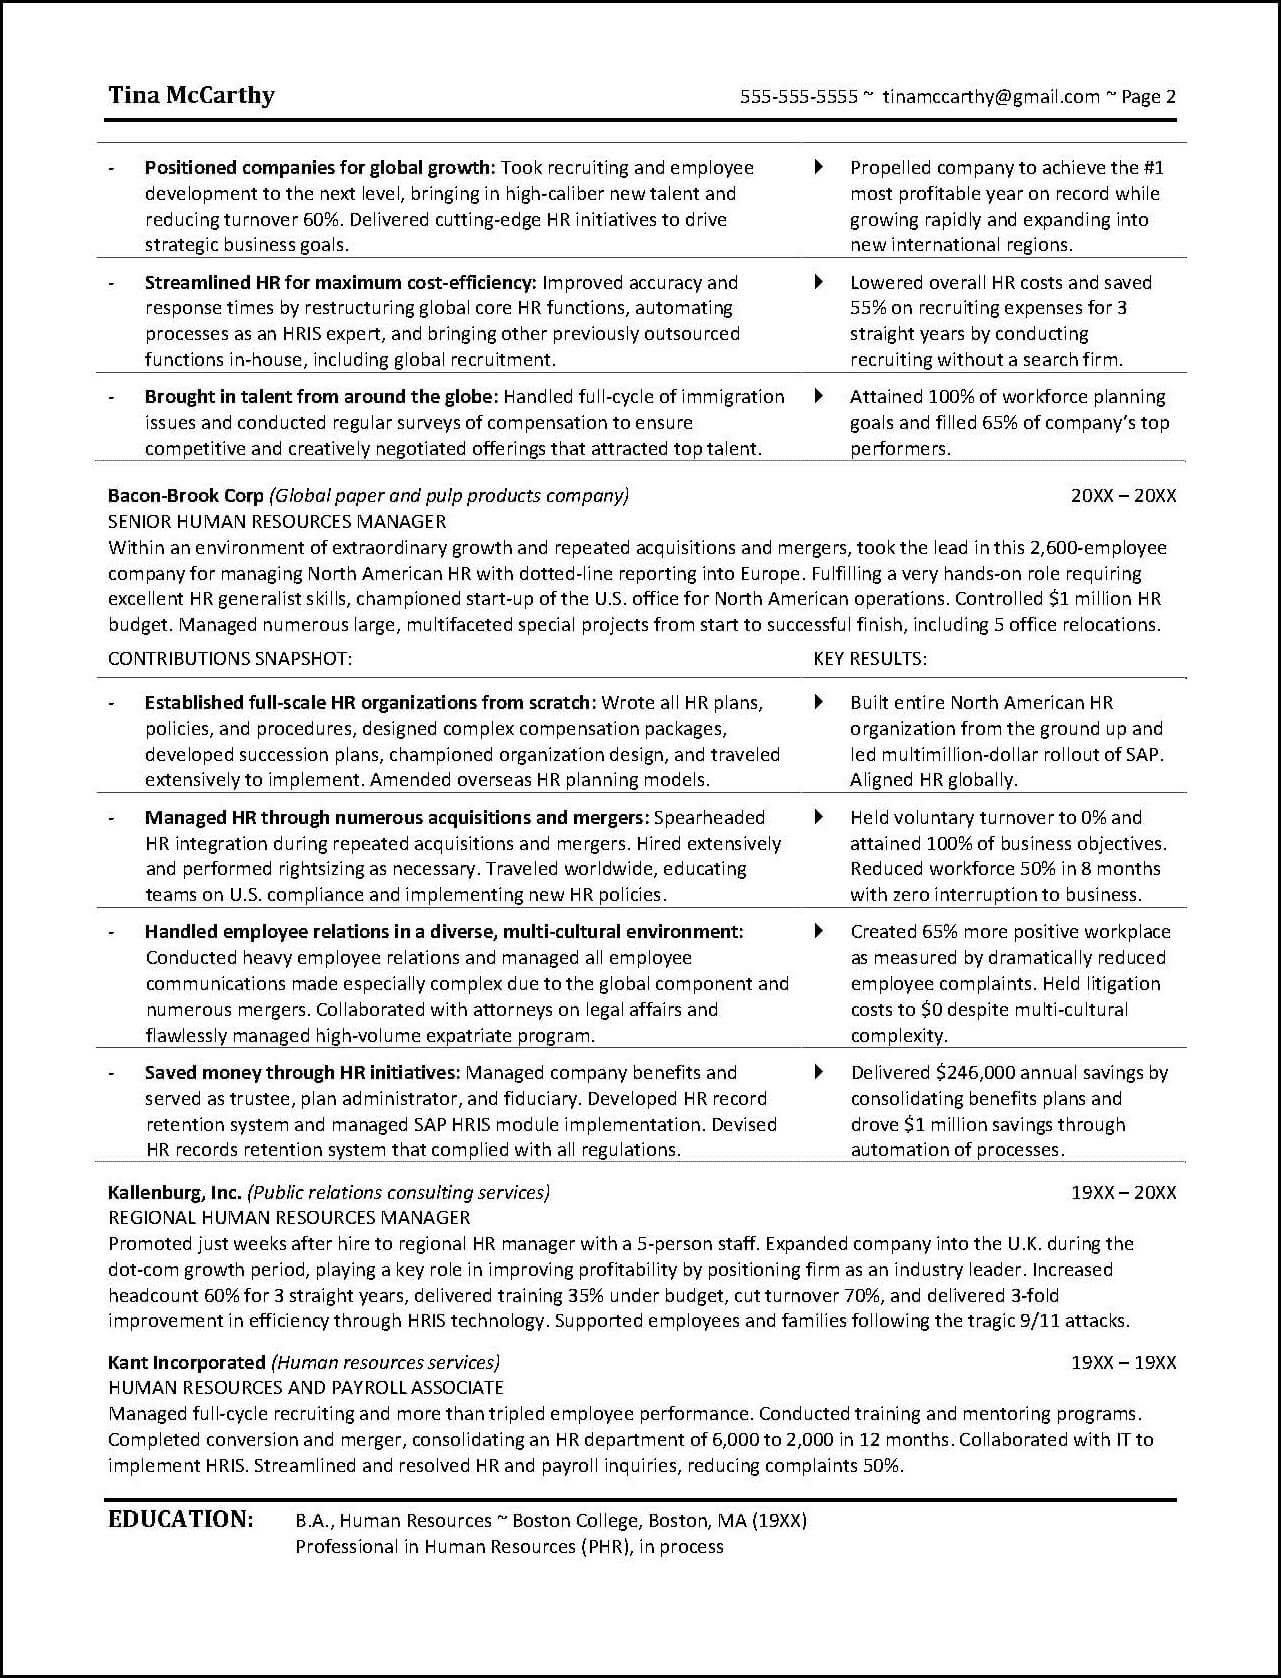 Human resource manager resume pdf